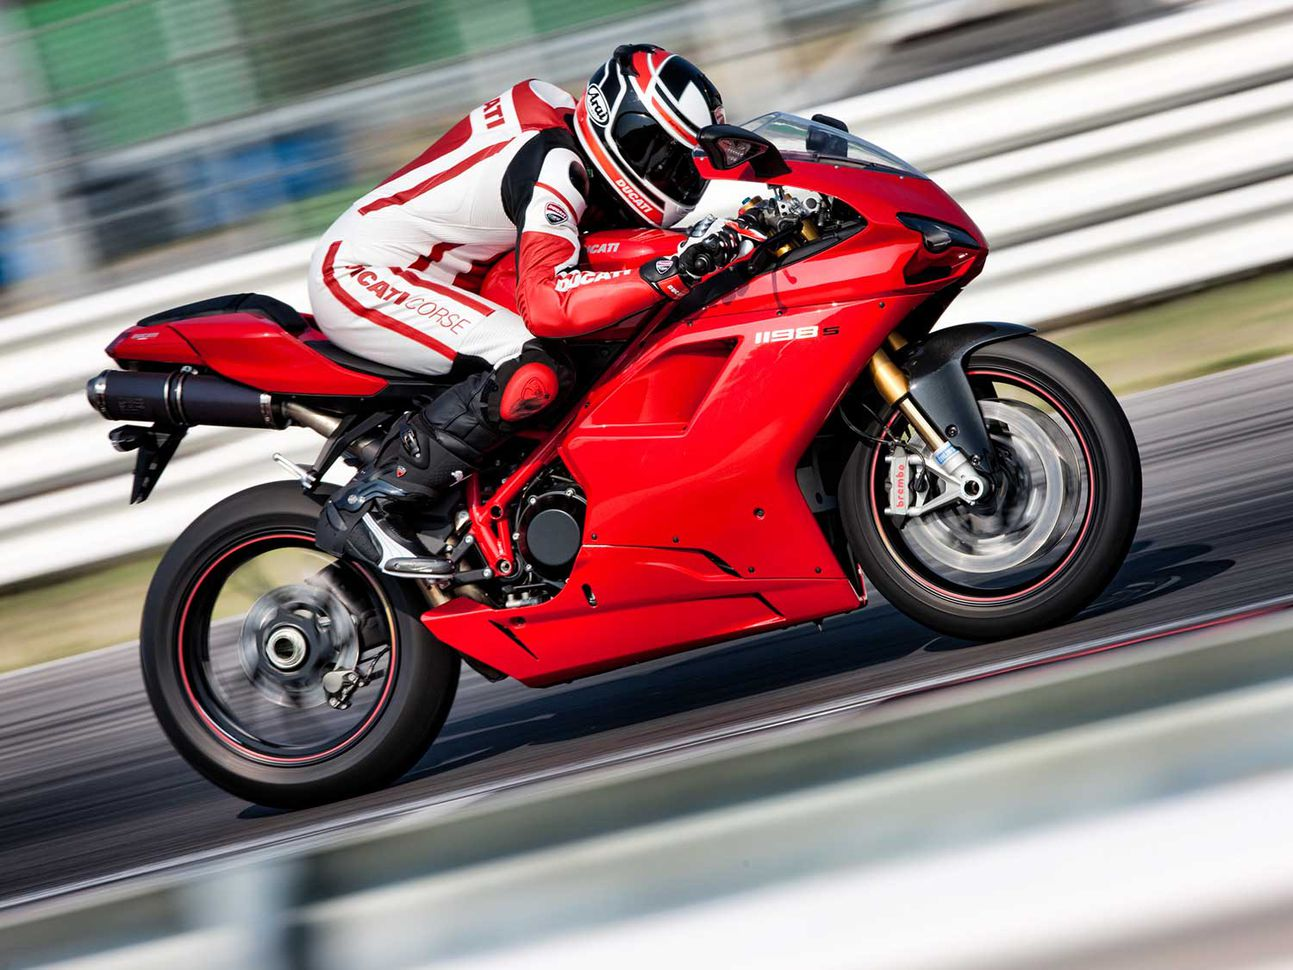 The Ducati 1198 series is the last superbike from Borgo Panigale to feature a trellis frame and rubber band V-twin.